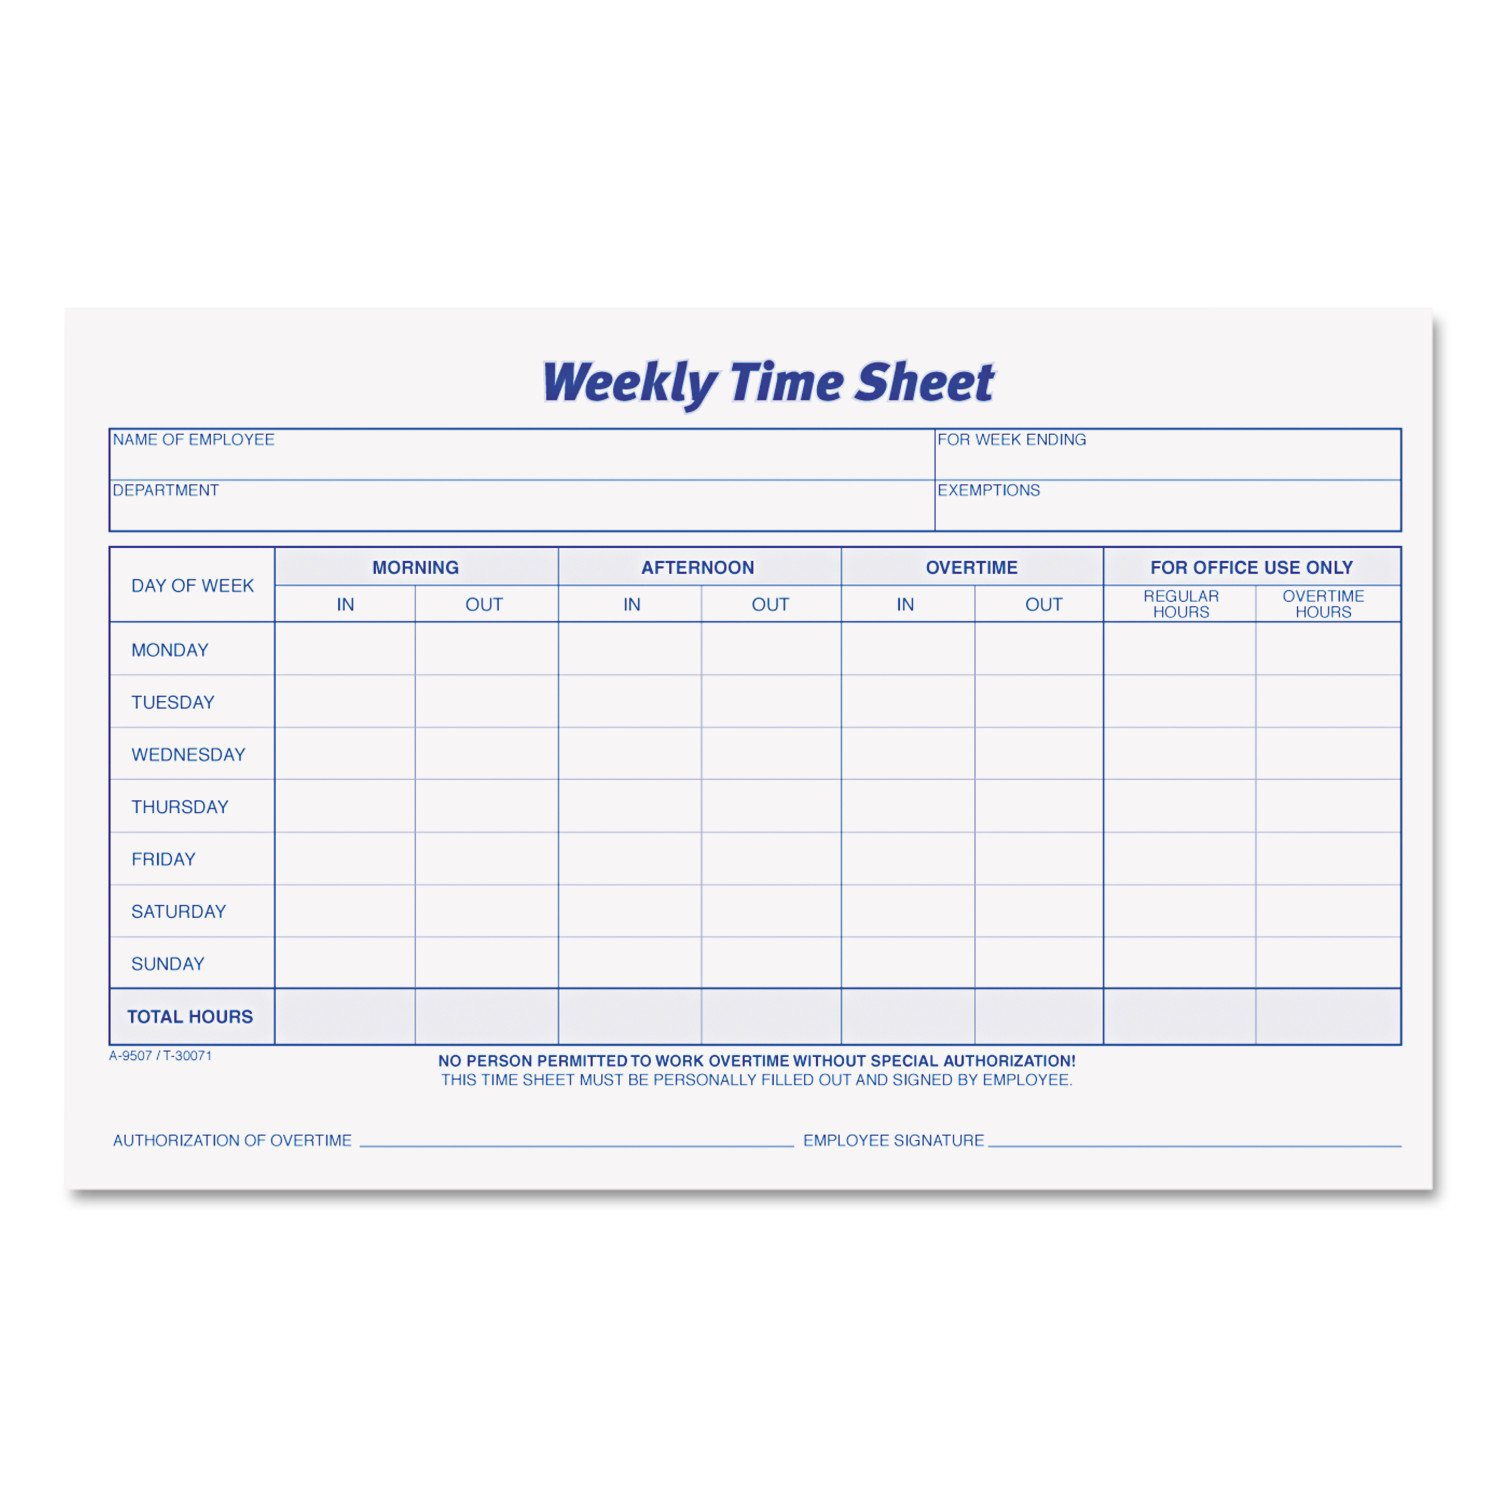 TOPS Weekly Employee Time Sheet, 8.5 x 5.5 Inches, 100 Sheets per Pad, 2 Pads/Pack (30071)